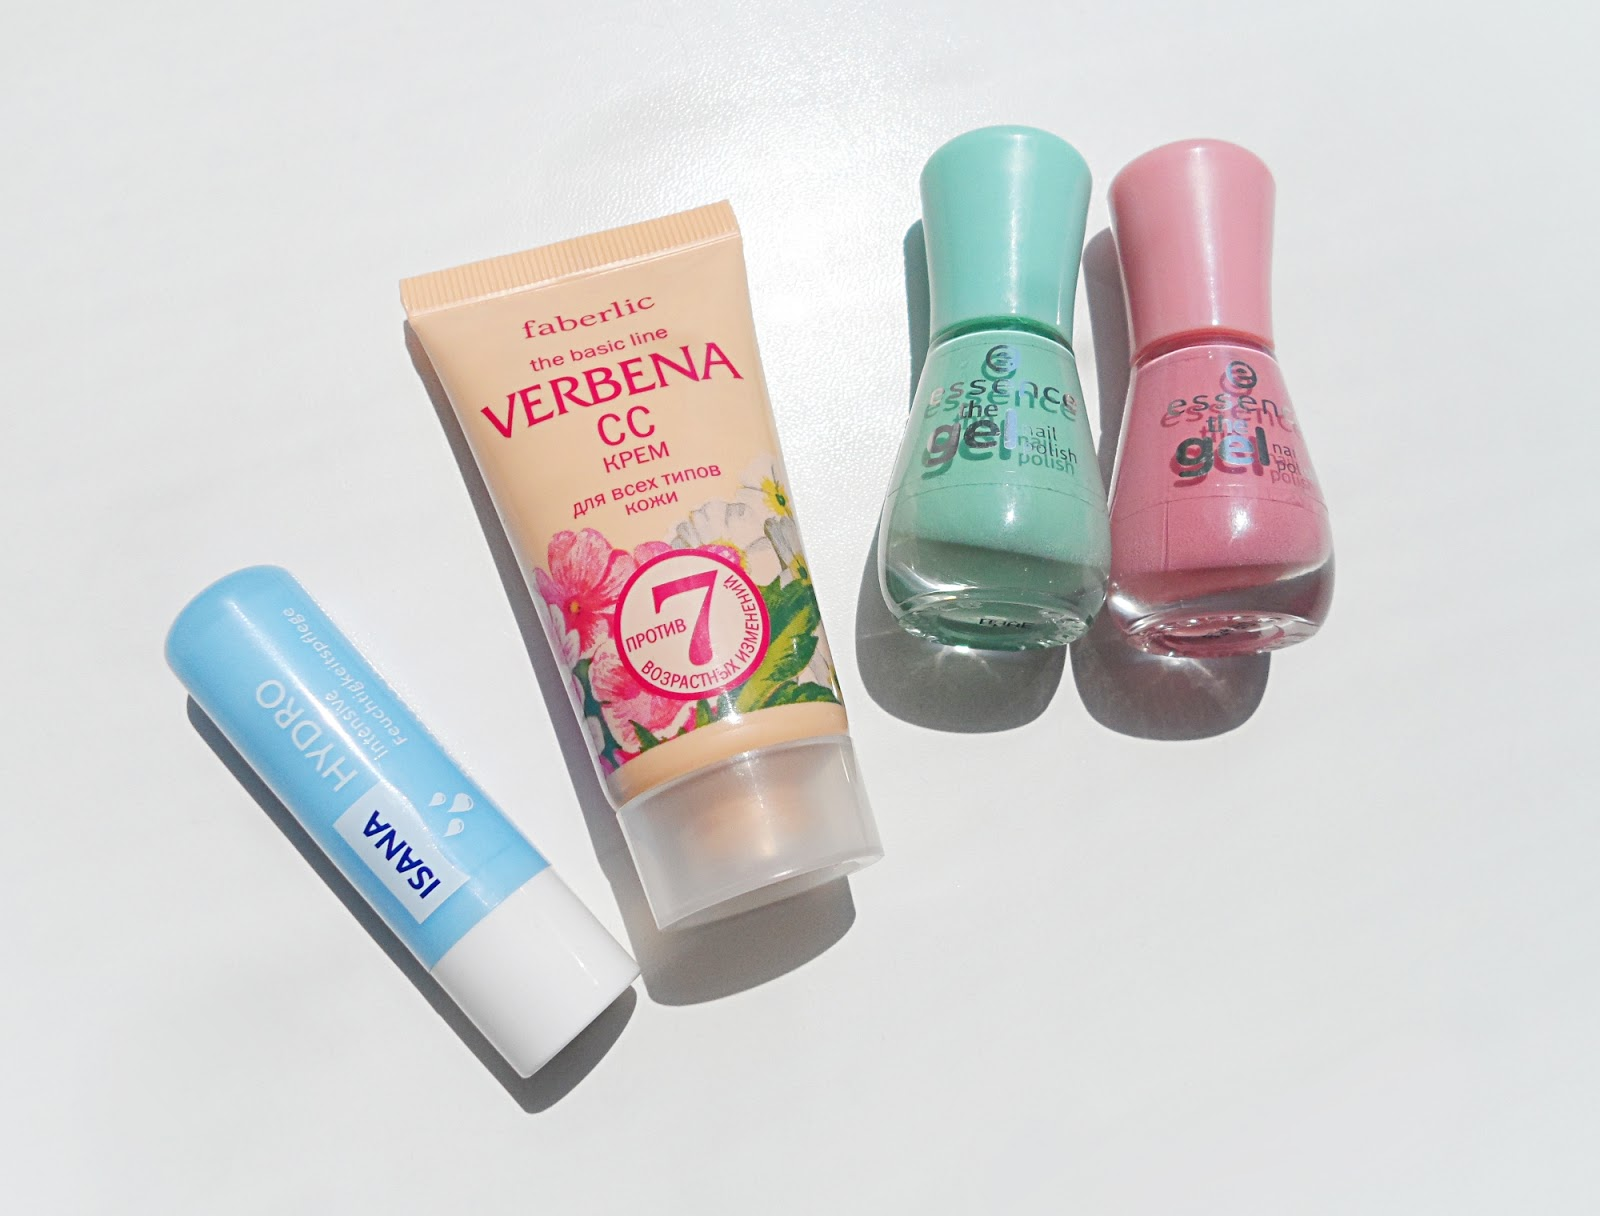 liz breygel oriflame nature secrets verbena cc cream nail polish gel essence review swatches Summertime Beauty Essentials Summer Beauty Products Must Have for Summer Vacation Products for Summertime